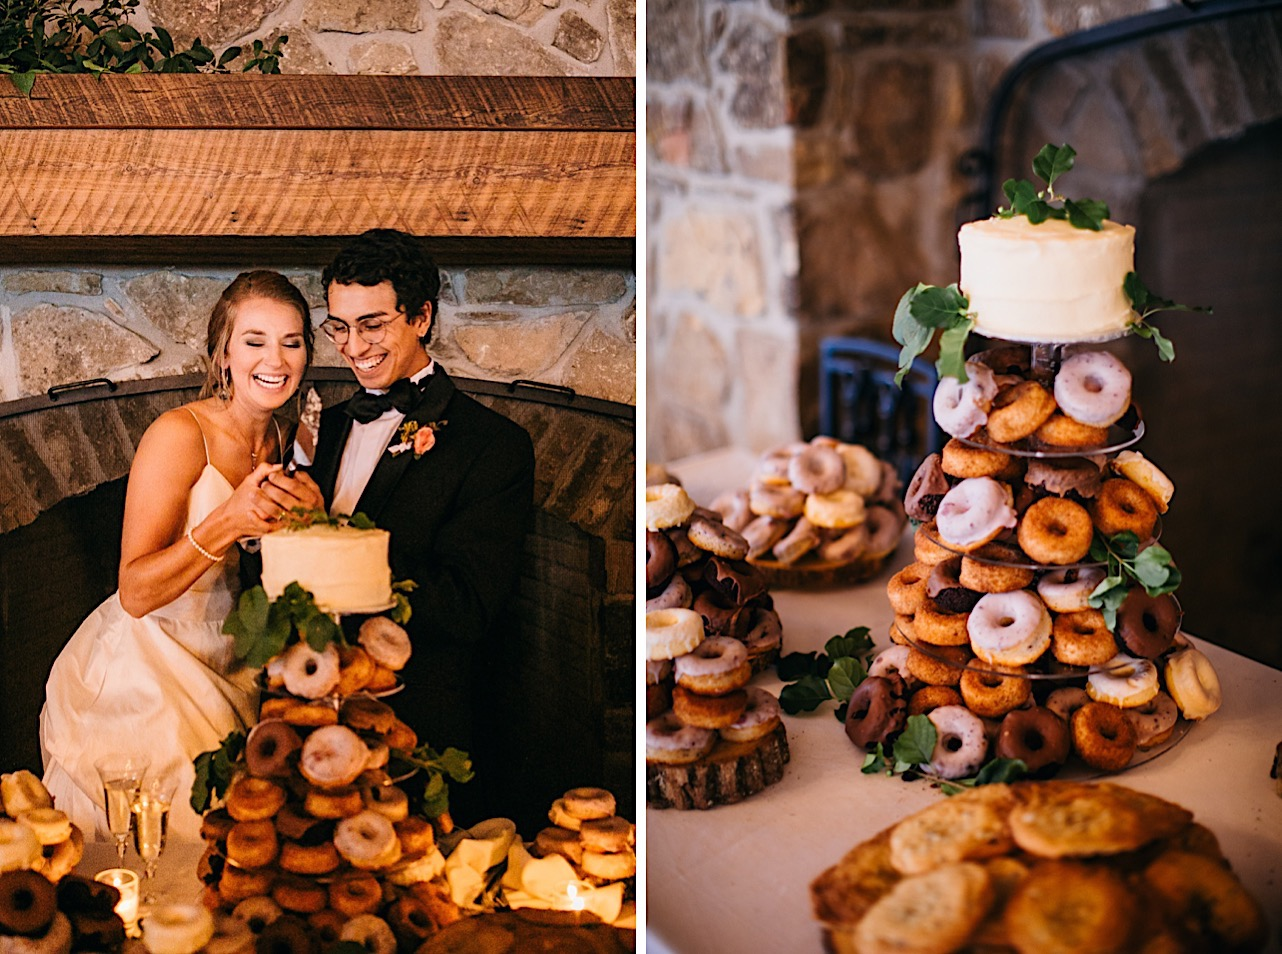 bride and groom stand next to their 4-tier donut cake tower and cut into the small layer cake at the top